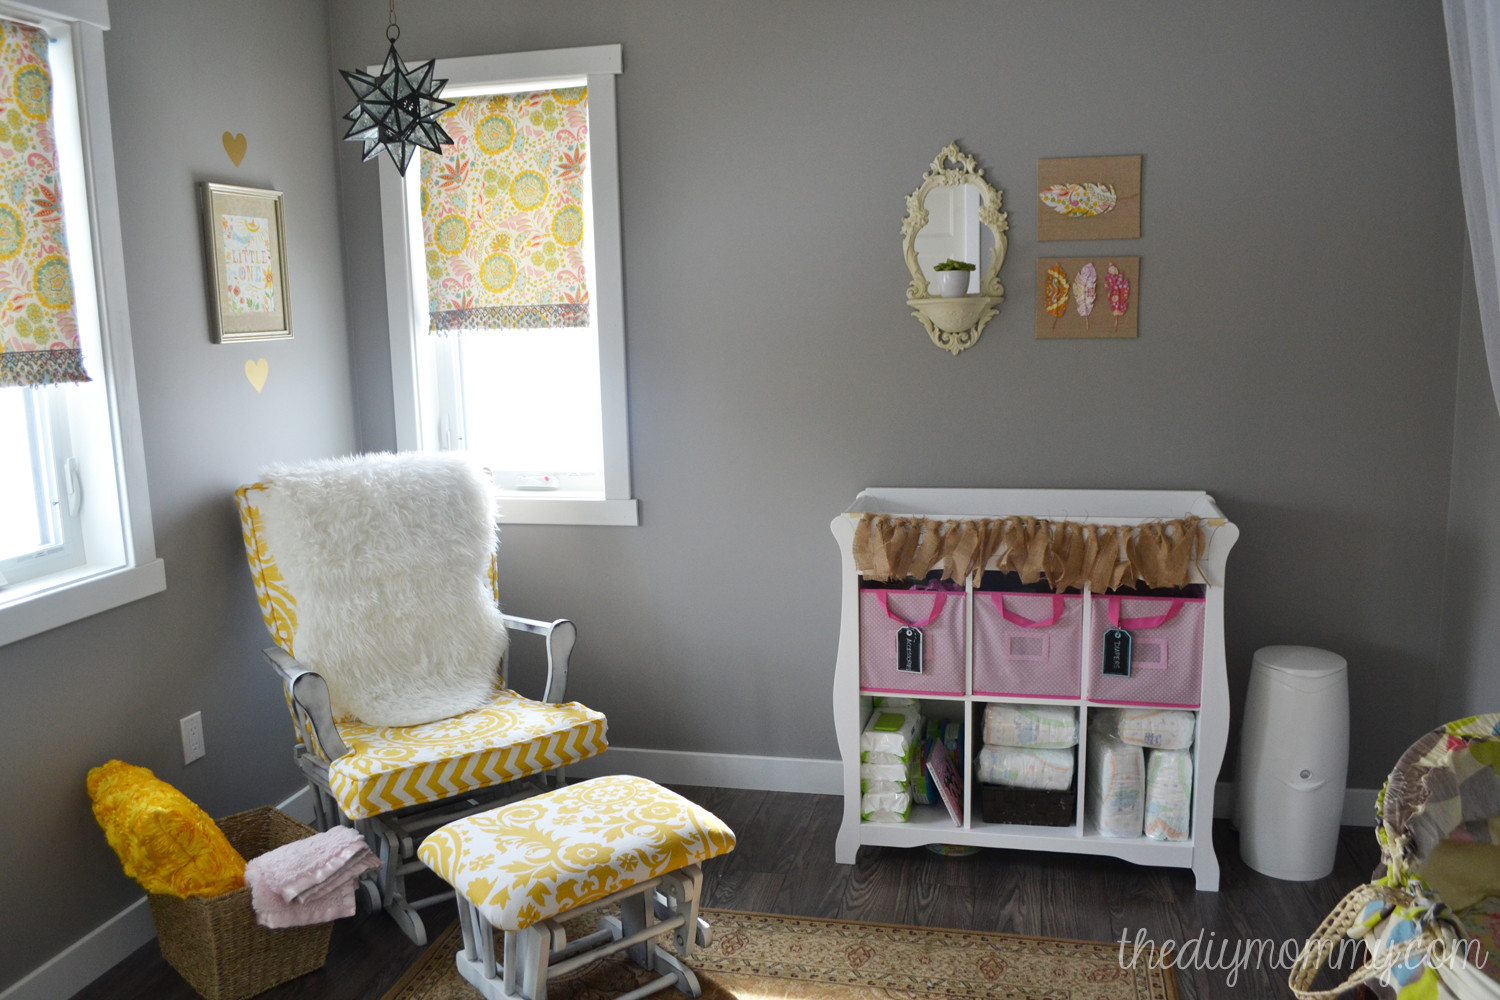 Best ideas about DIY Baby Decor . Save or Pin Baby B's Soft Boho Nursery Now.